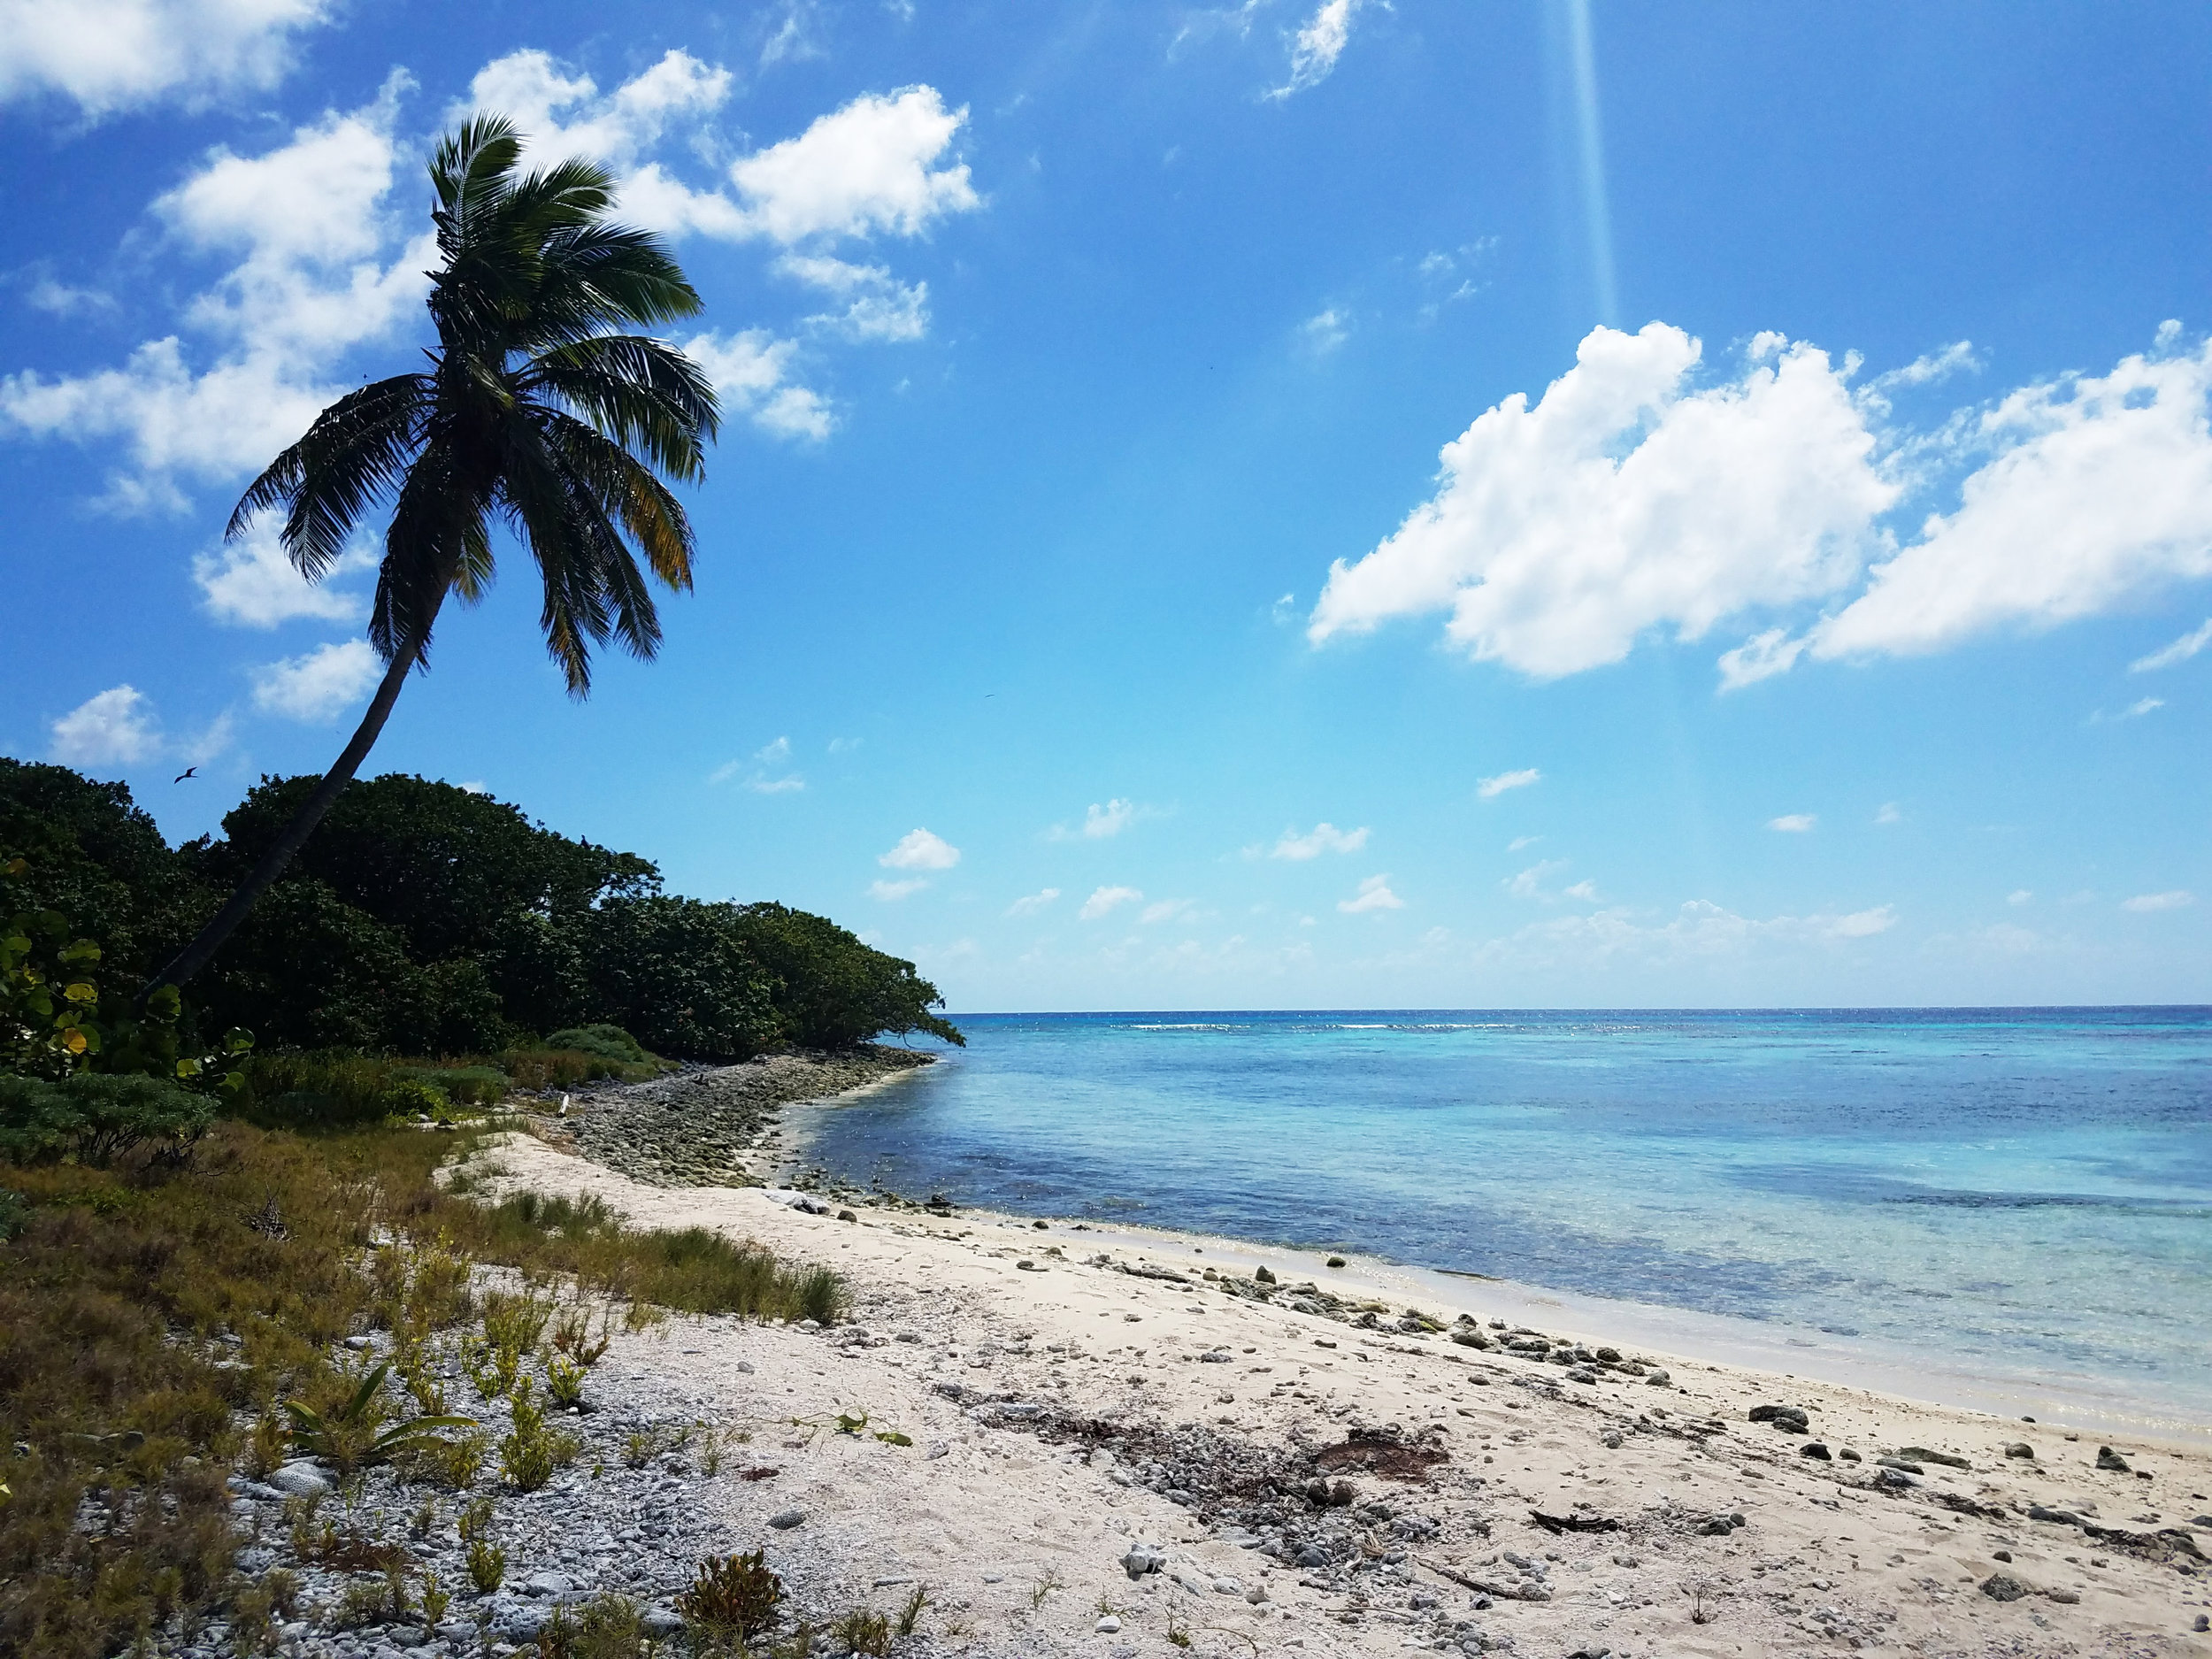 The island of Half Moon Key was like something out of a fairytale. A worthwhile stop on a scuba diving adventure.